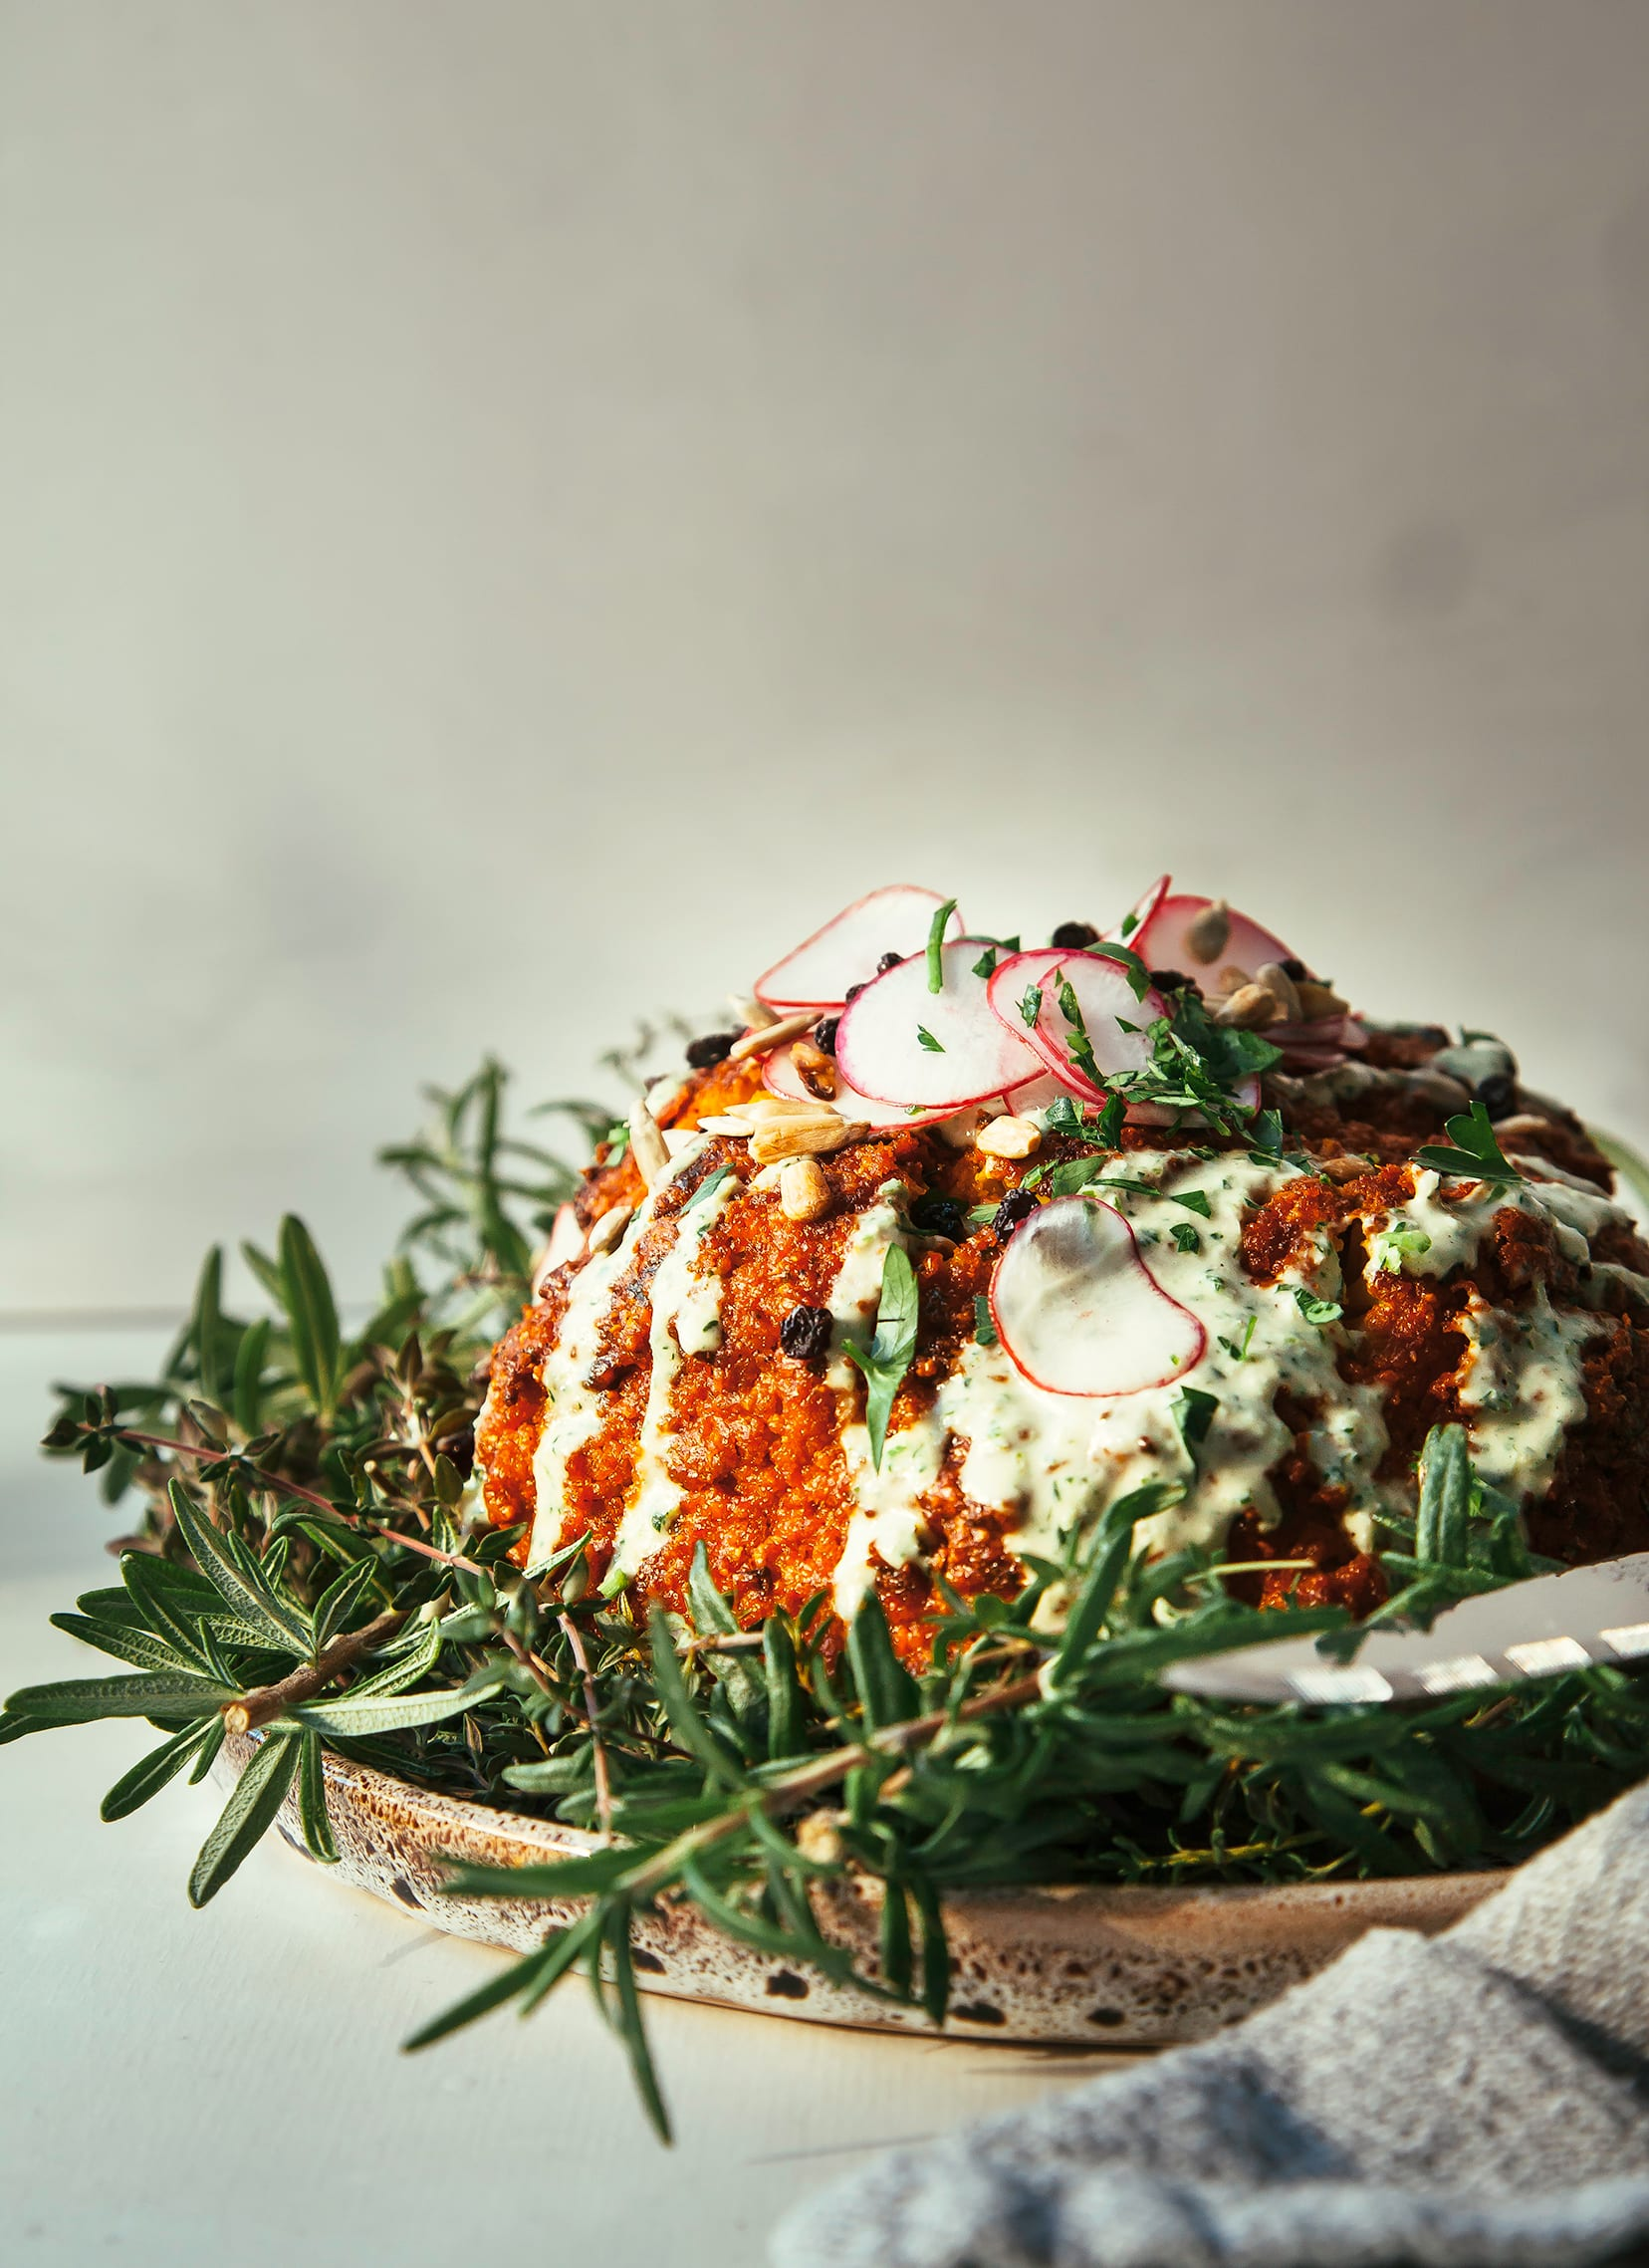 ROMESCO ROASTED WHOLE CAULIFLOWER w/ HERBED TAHINI CREAM - The First Mess